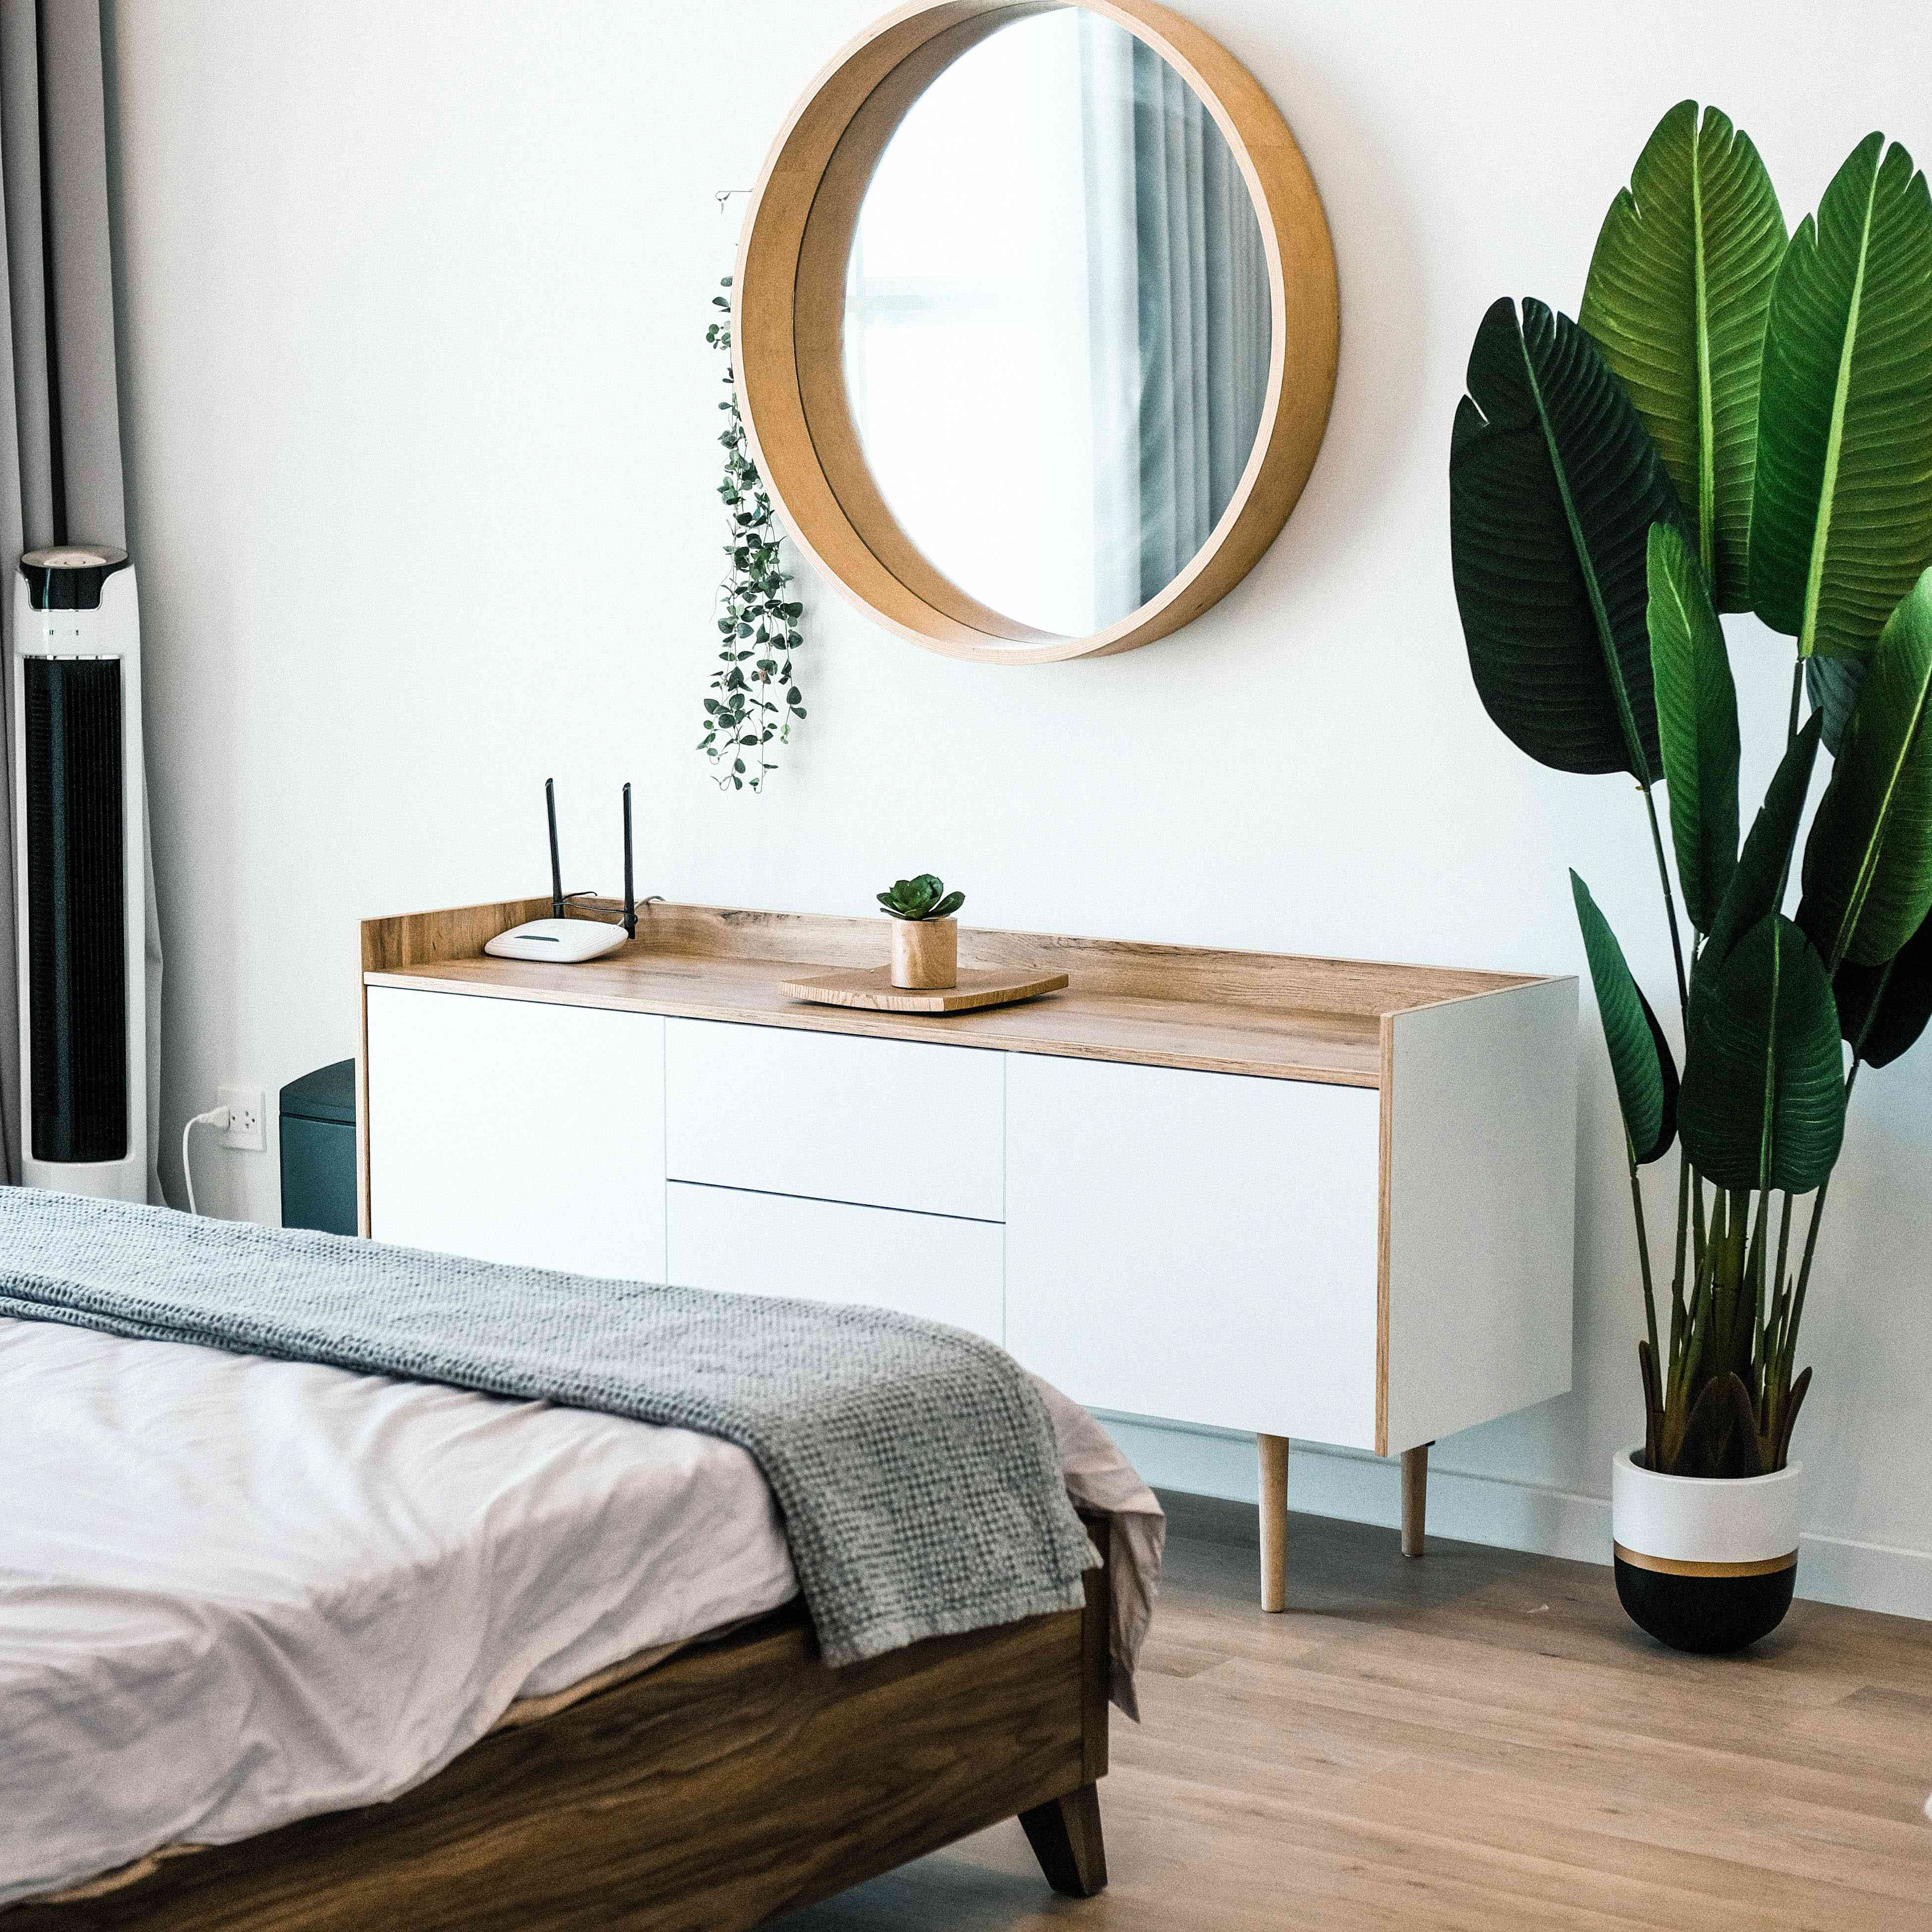 bedroom with platform bed, white dresser, and round mirror on the wall